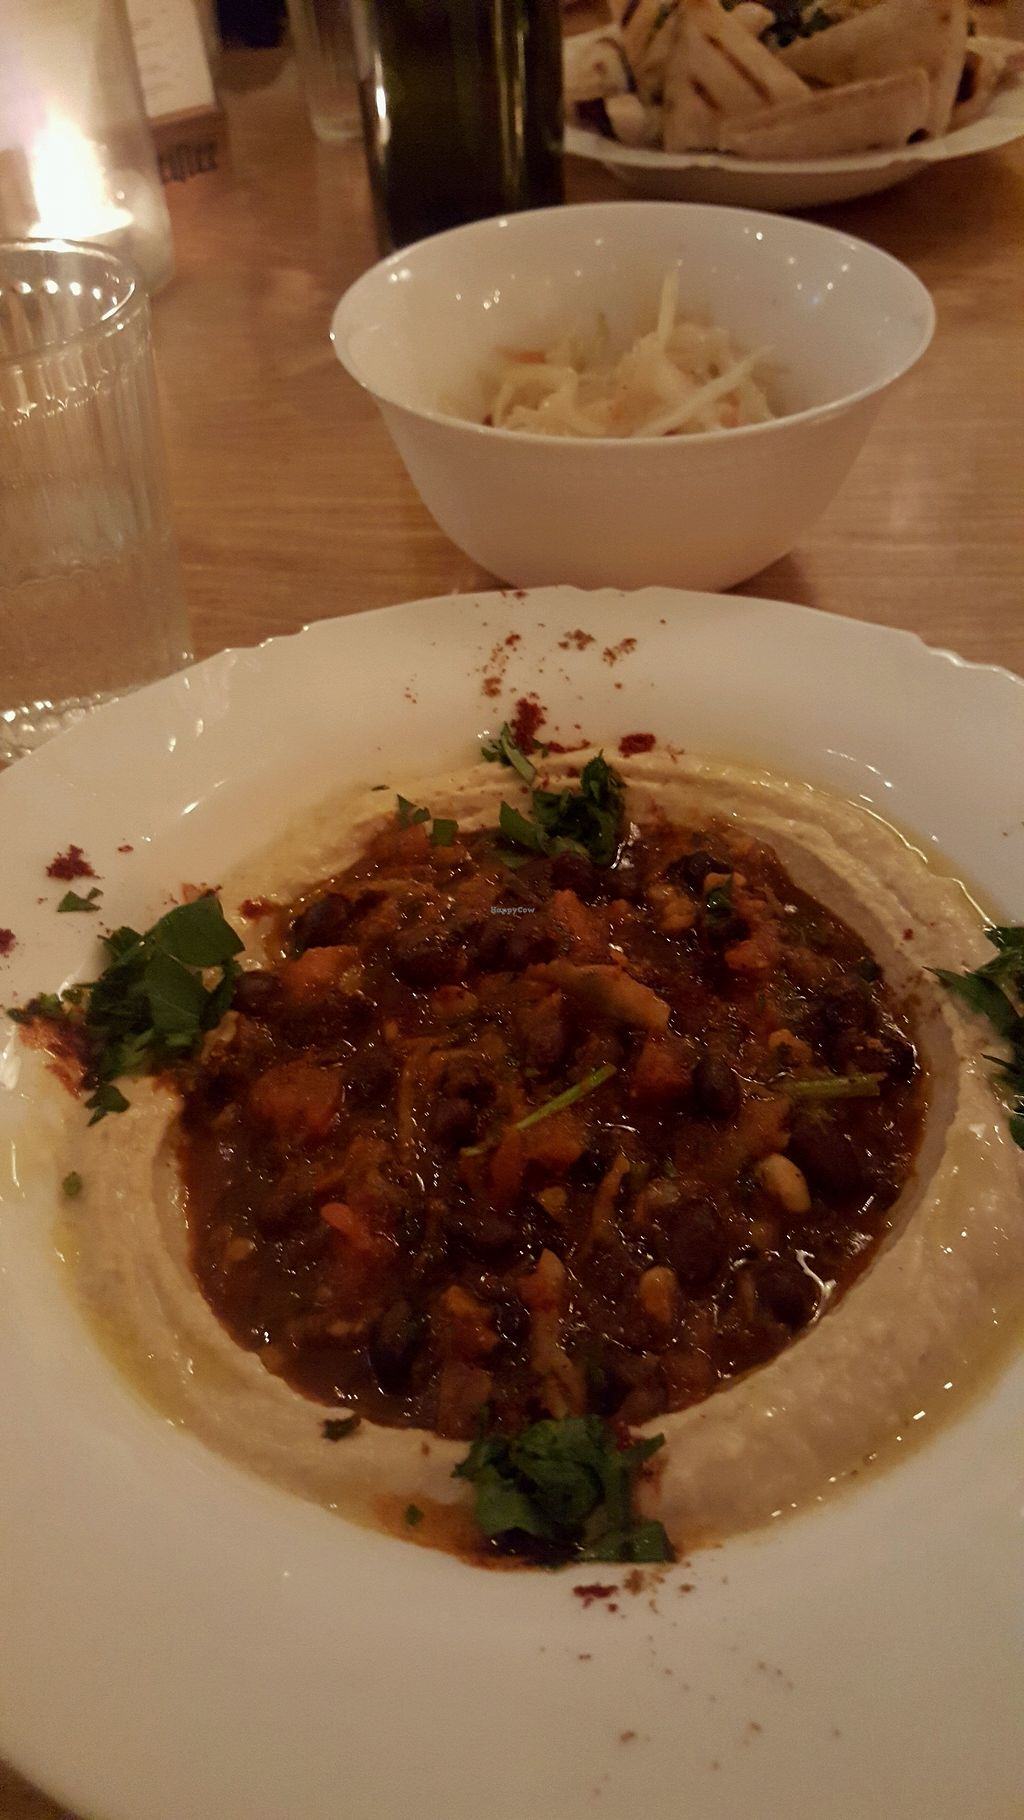 "Photo of Birona Hummus Bar  by <a href=""/members/profile/Babette"">Babette</a> <br/>Le géorgien  <br/> February 9, 2018  - <a href='/contact/abuse/image/85447/357000'>Report</a>"